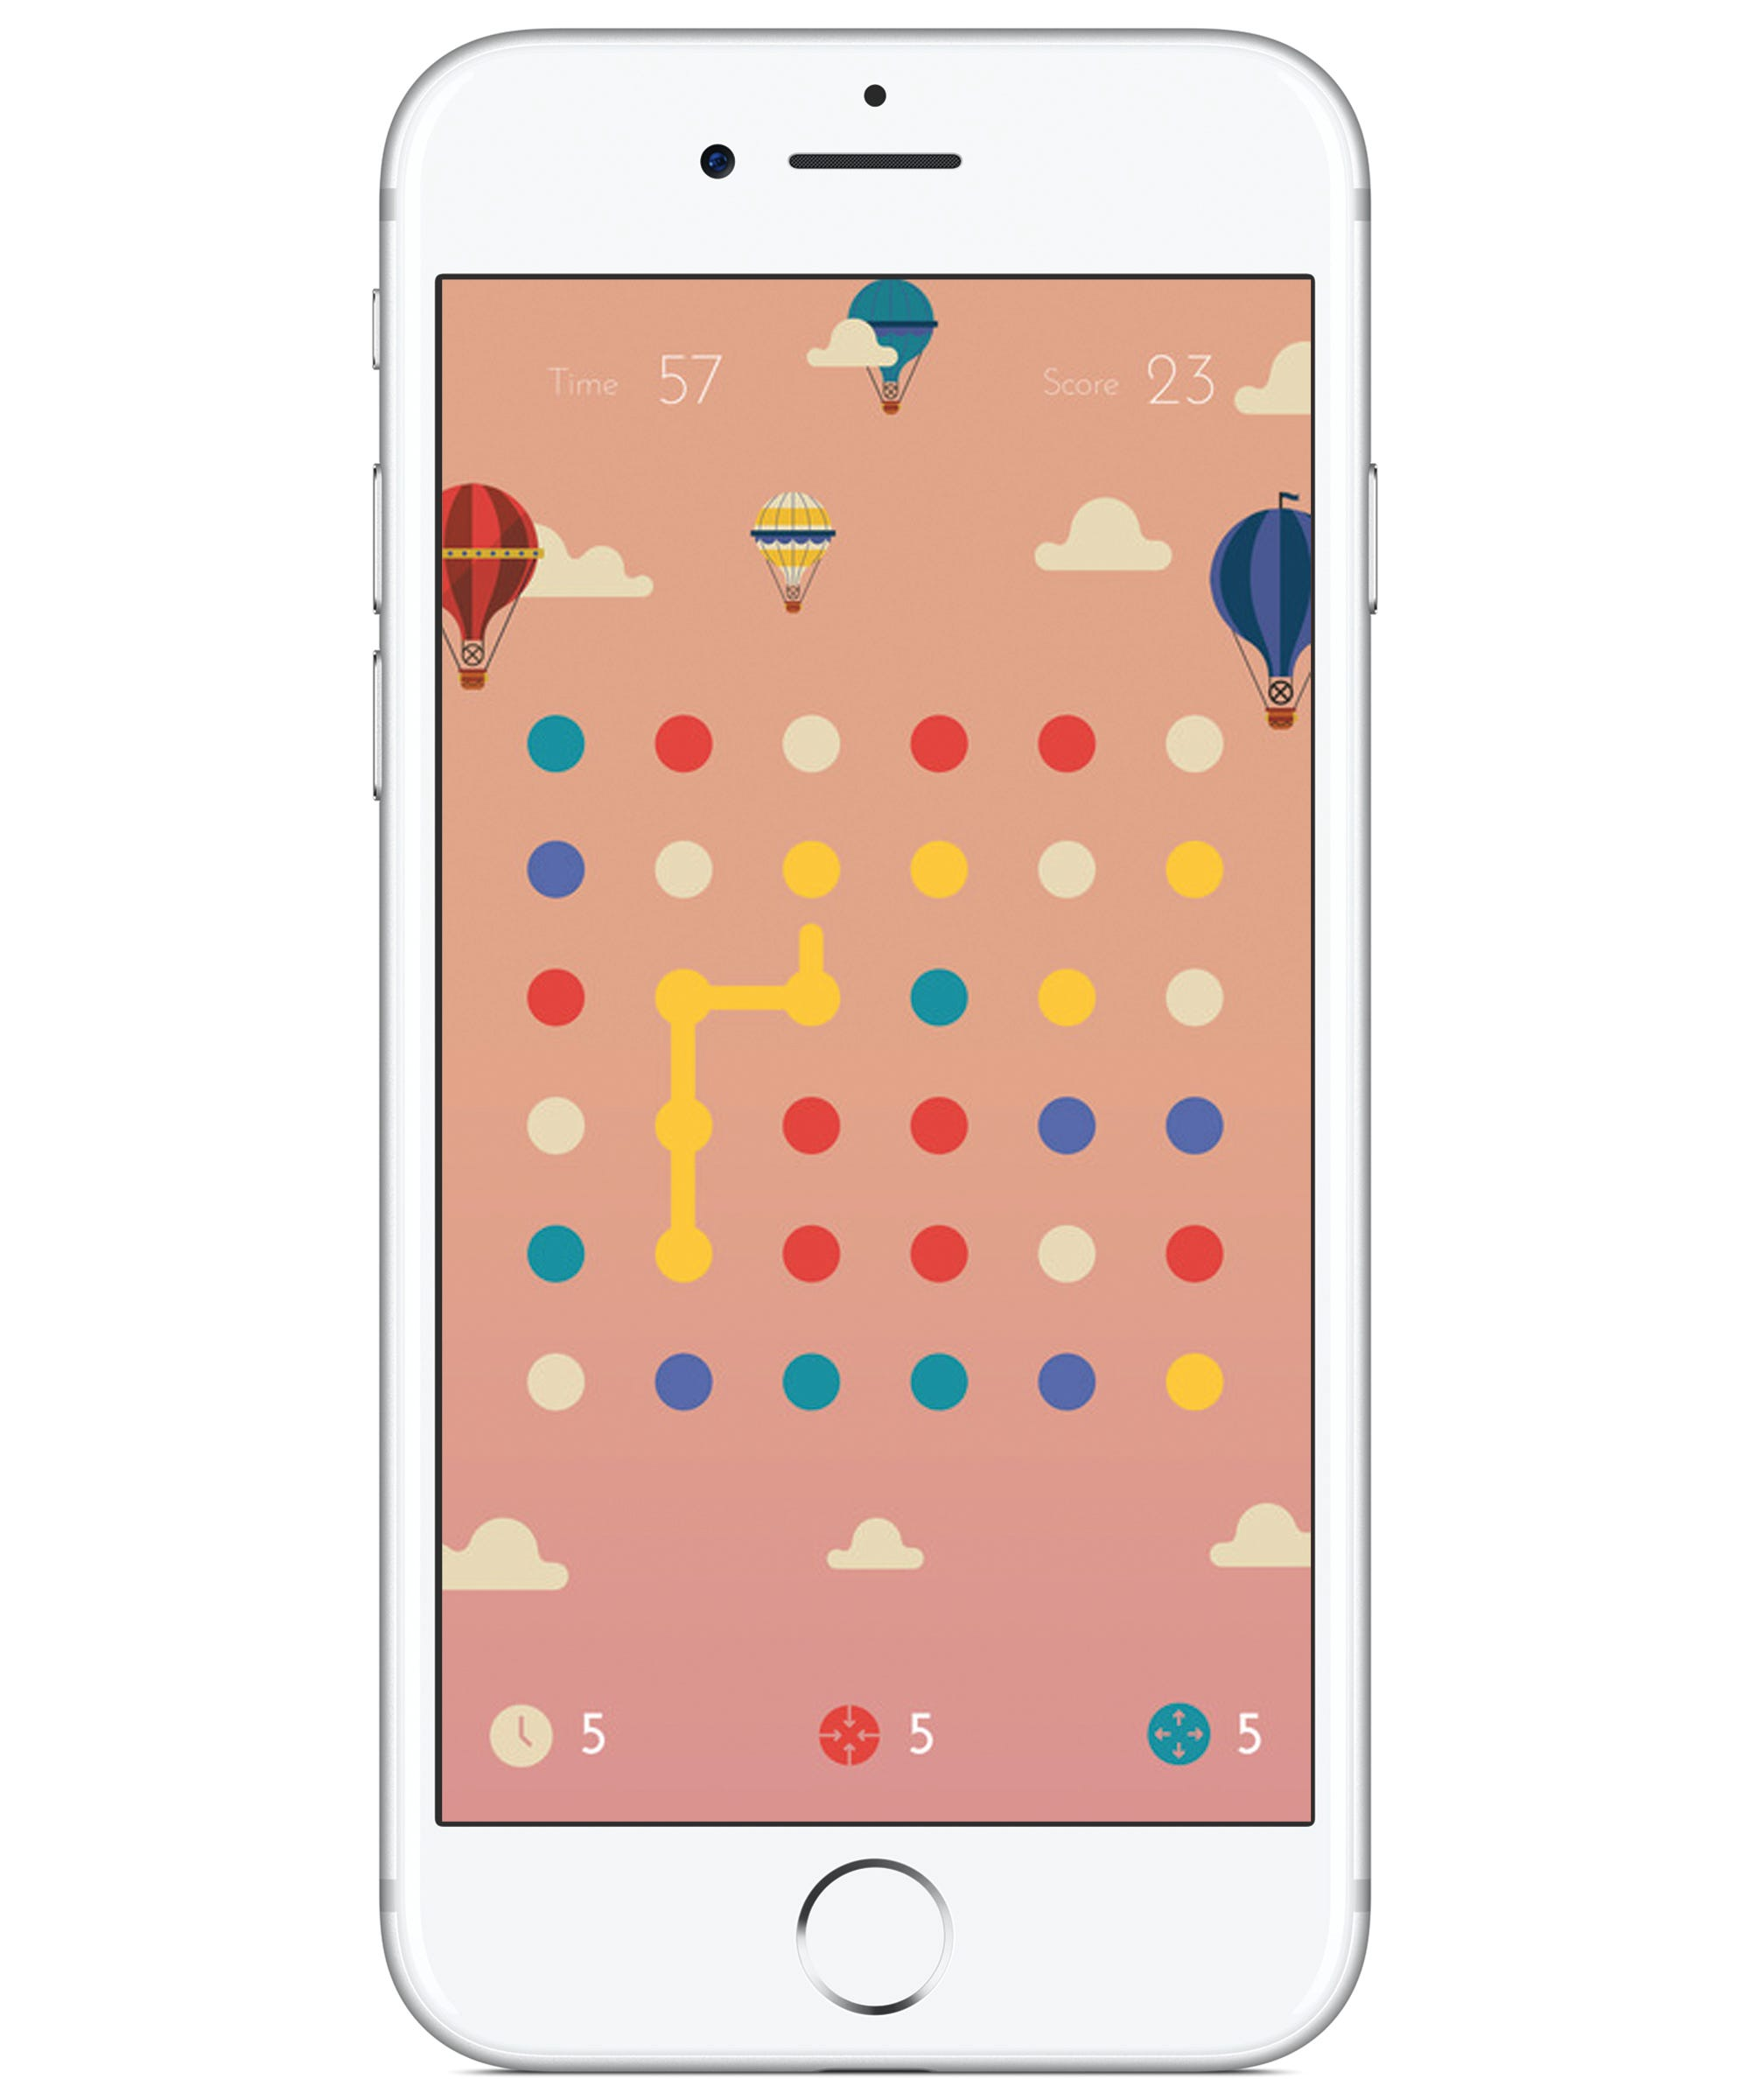 new wilds phone game dots app upgrade